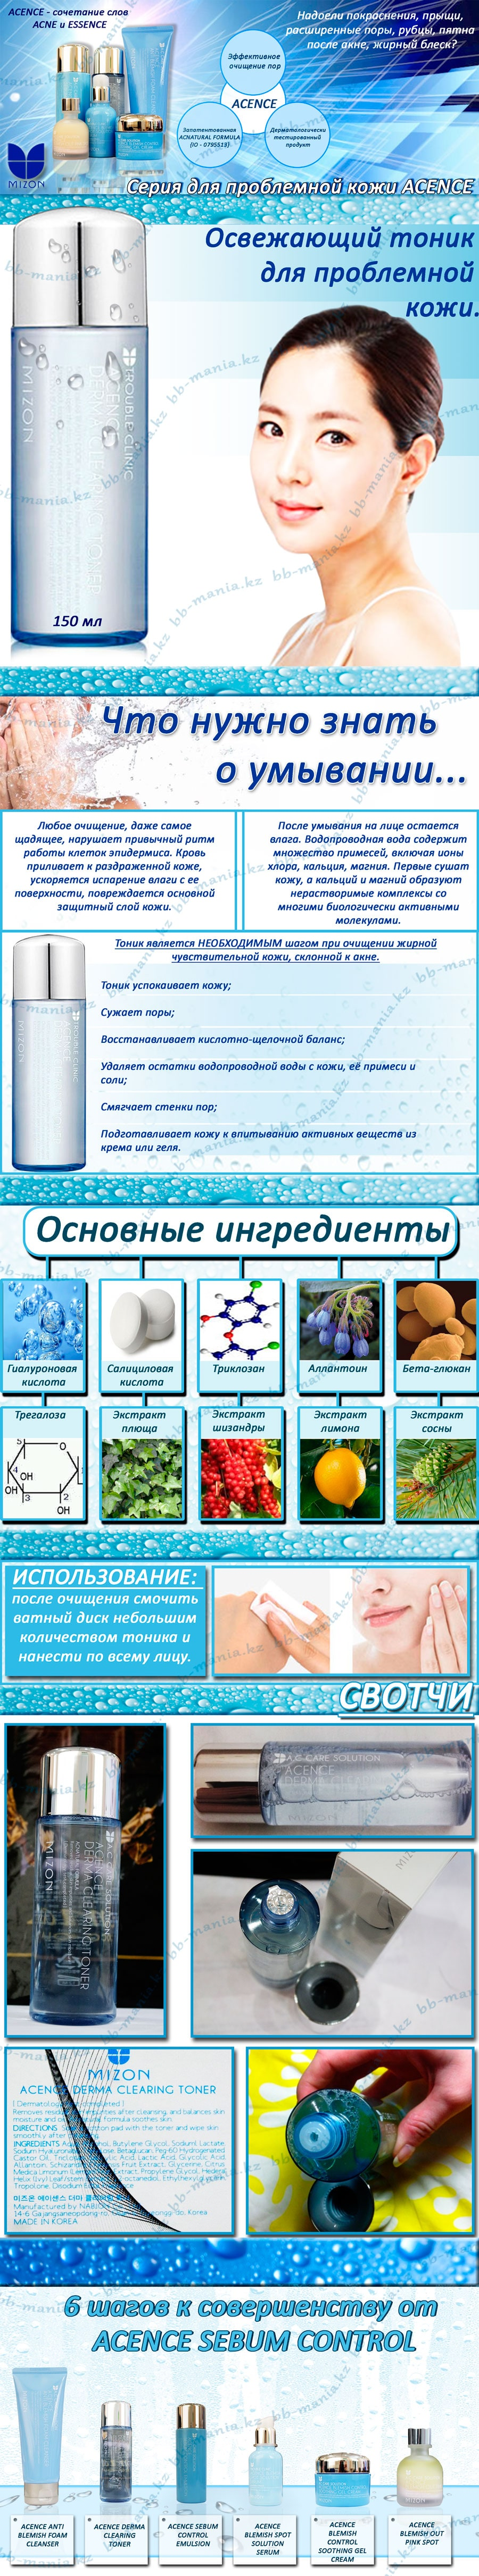 Acence-Derma-Clearing-Toner-min